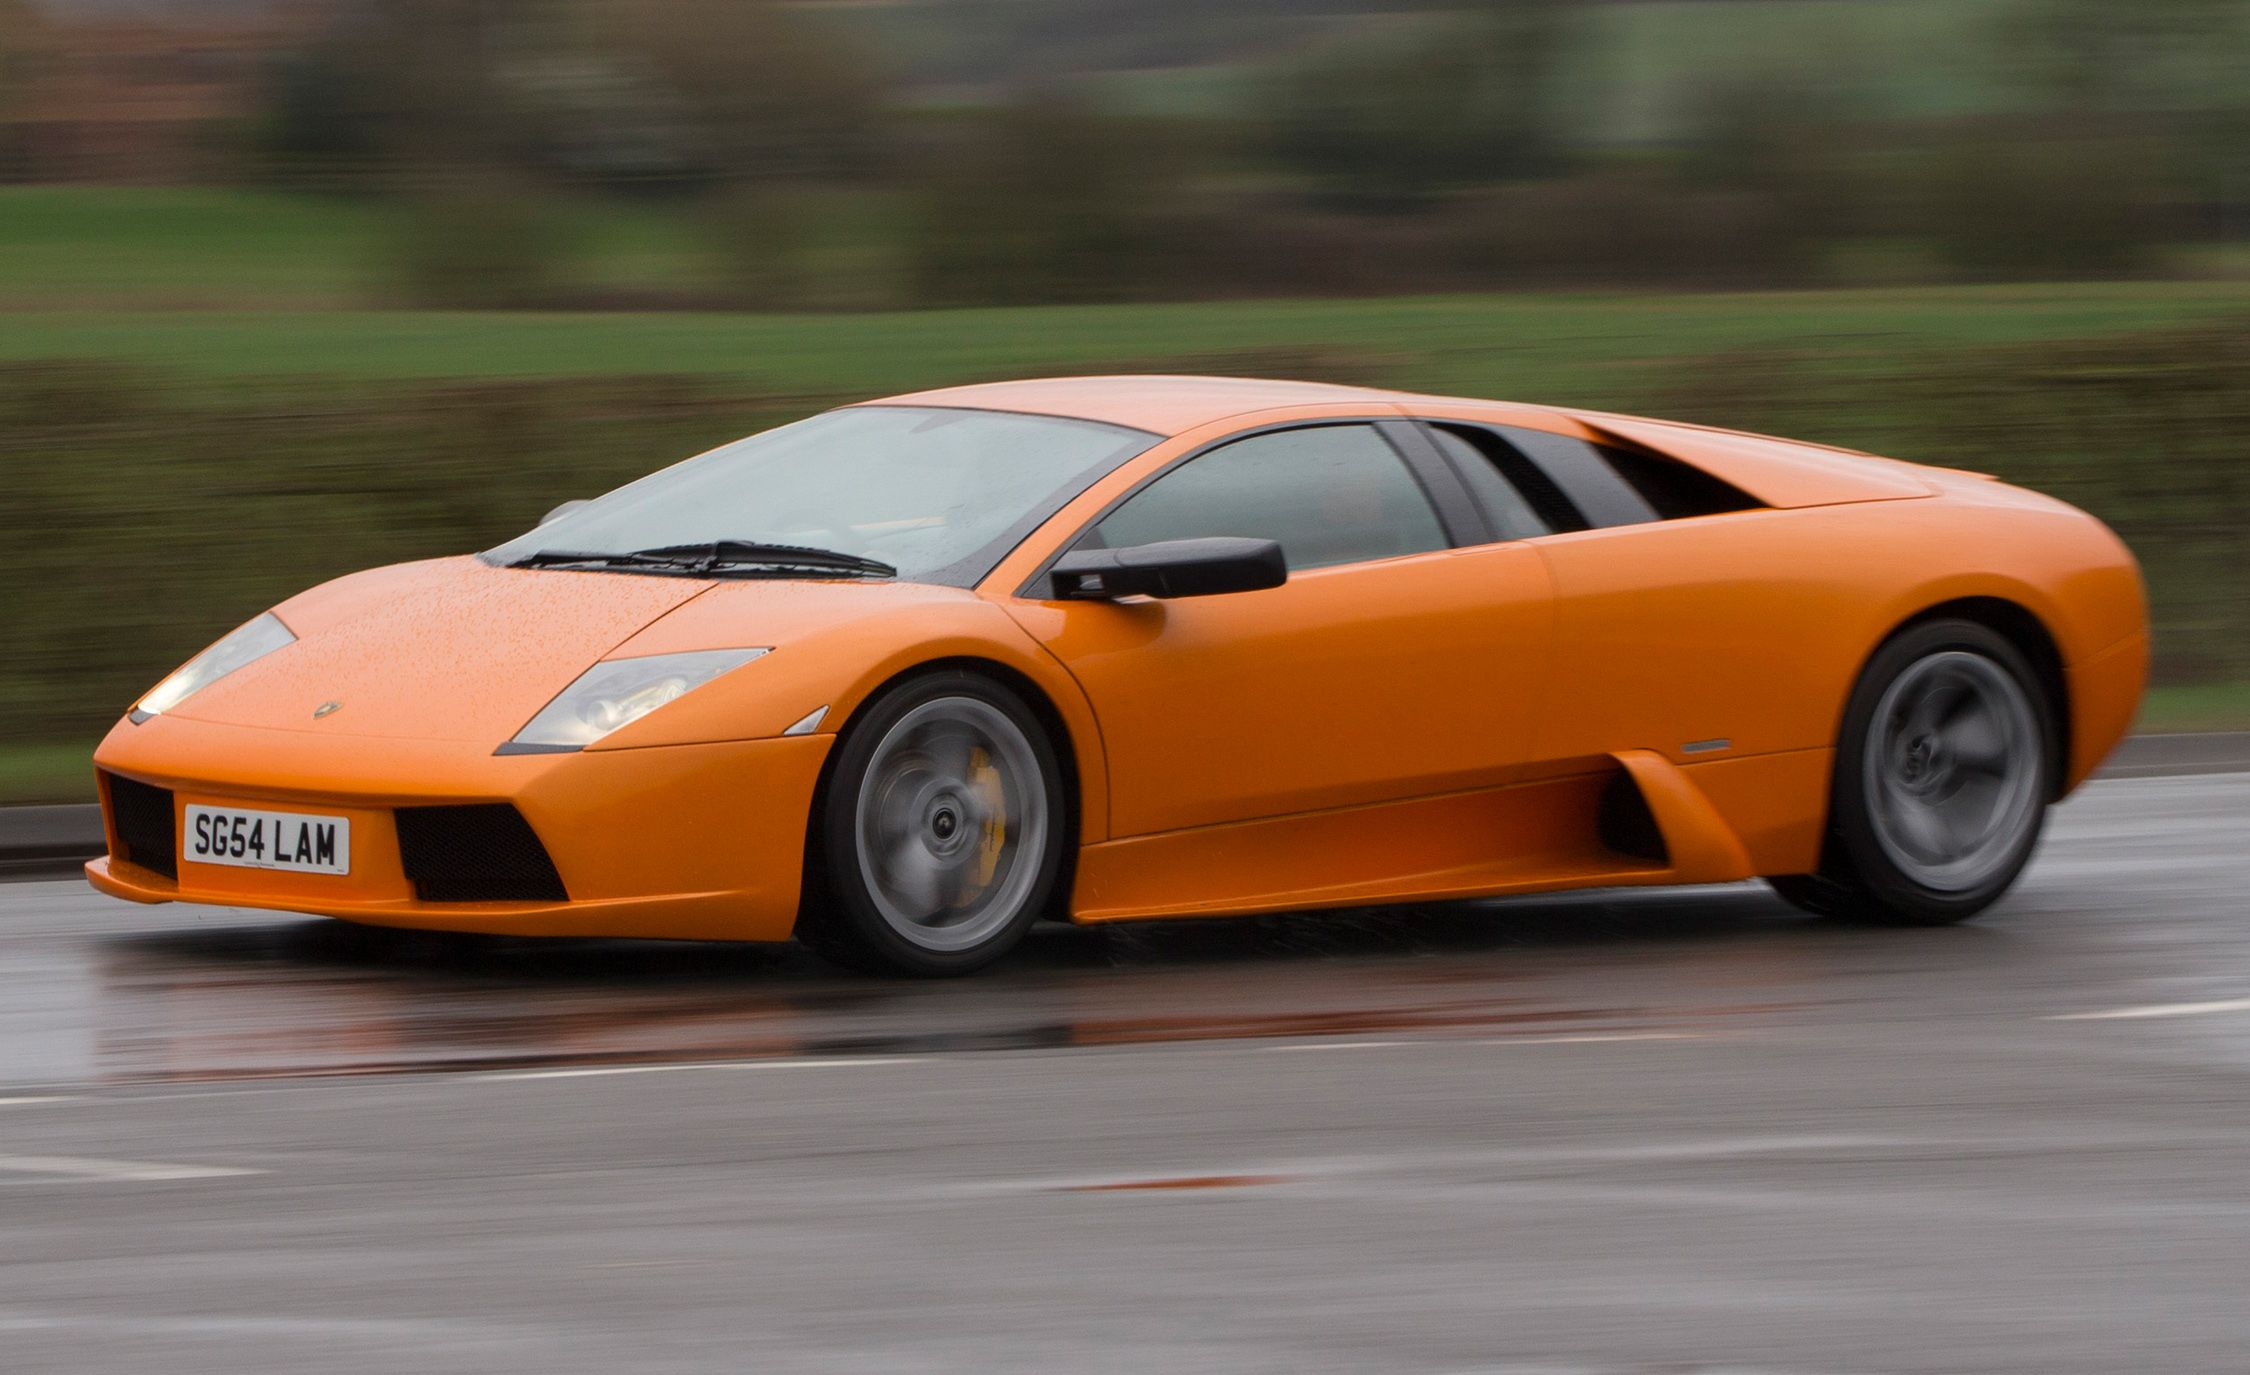 We Drive A 250 000 Mile Lamborghini Murcielago Feature